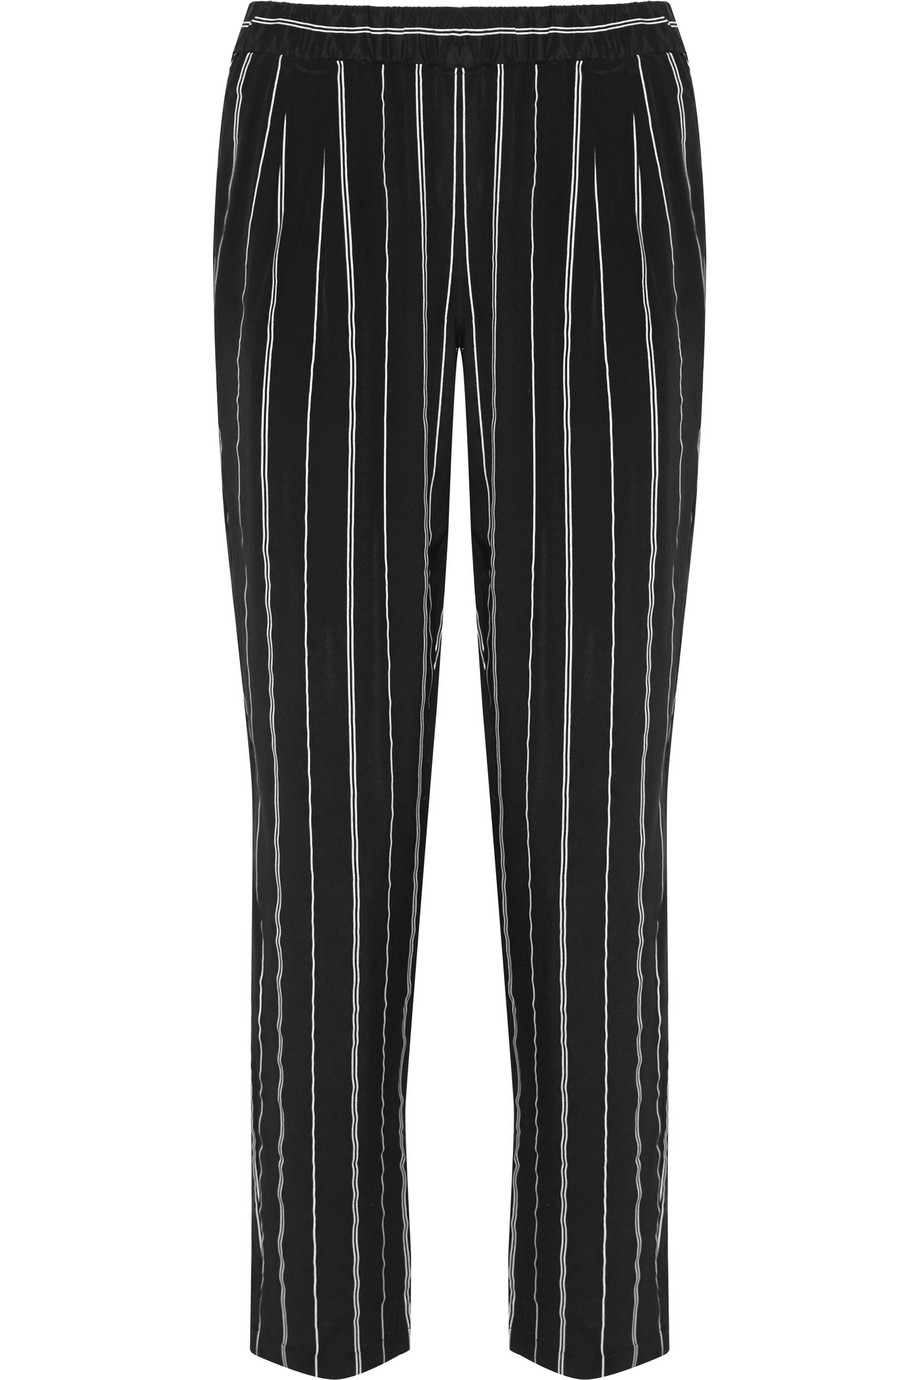 Equipment Hadley Striped Washed-Silk Pants, Black, Women's, Size: XS